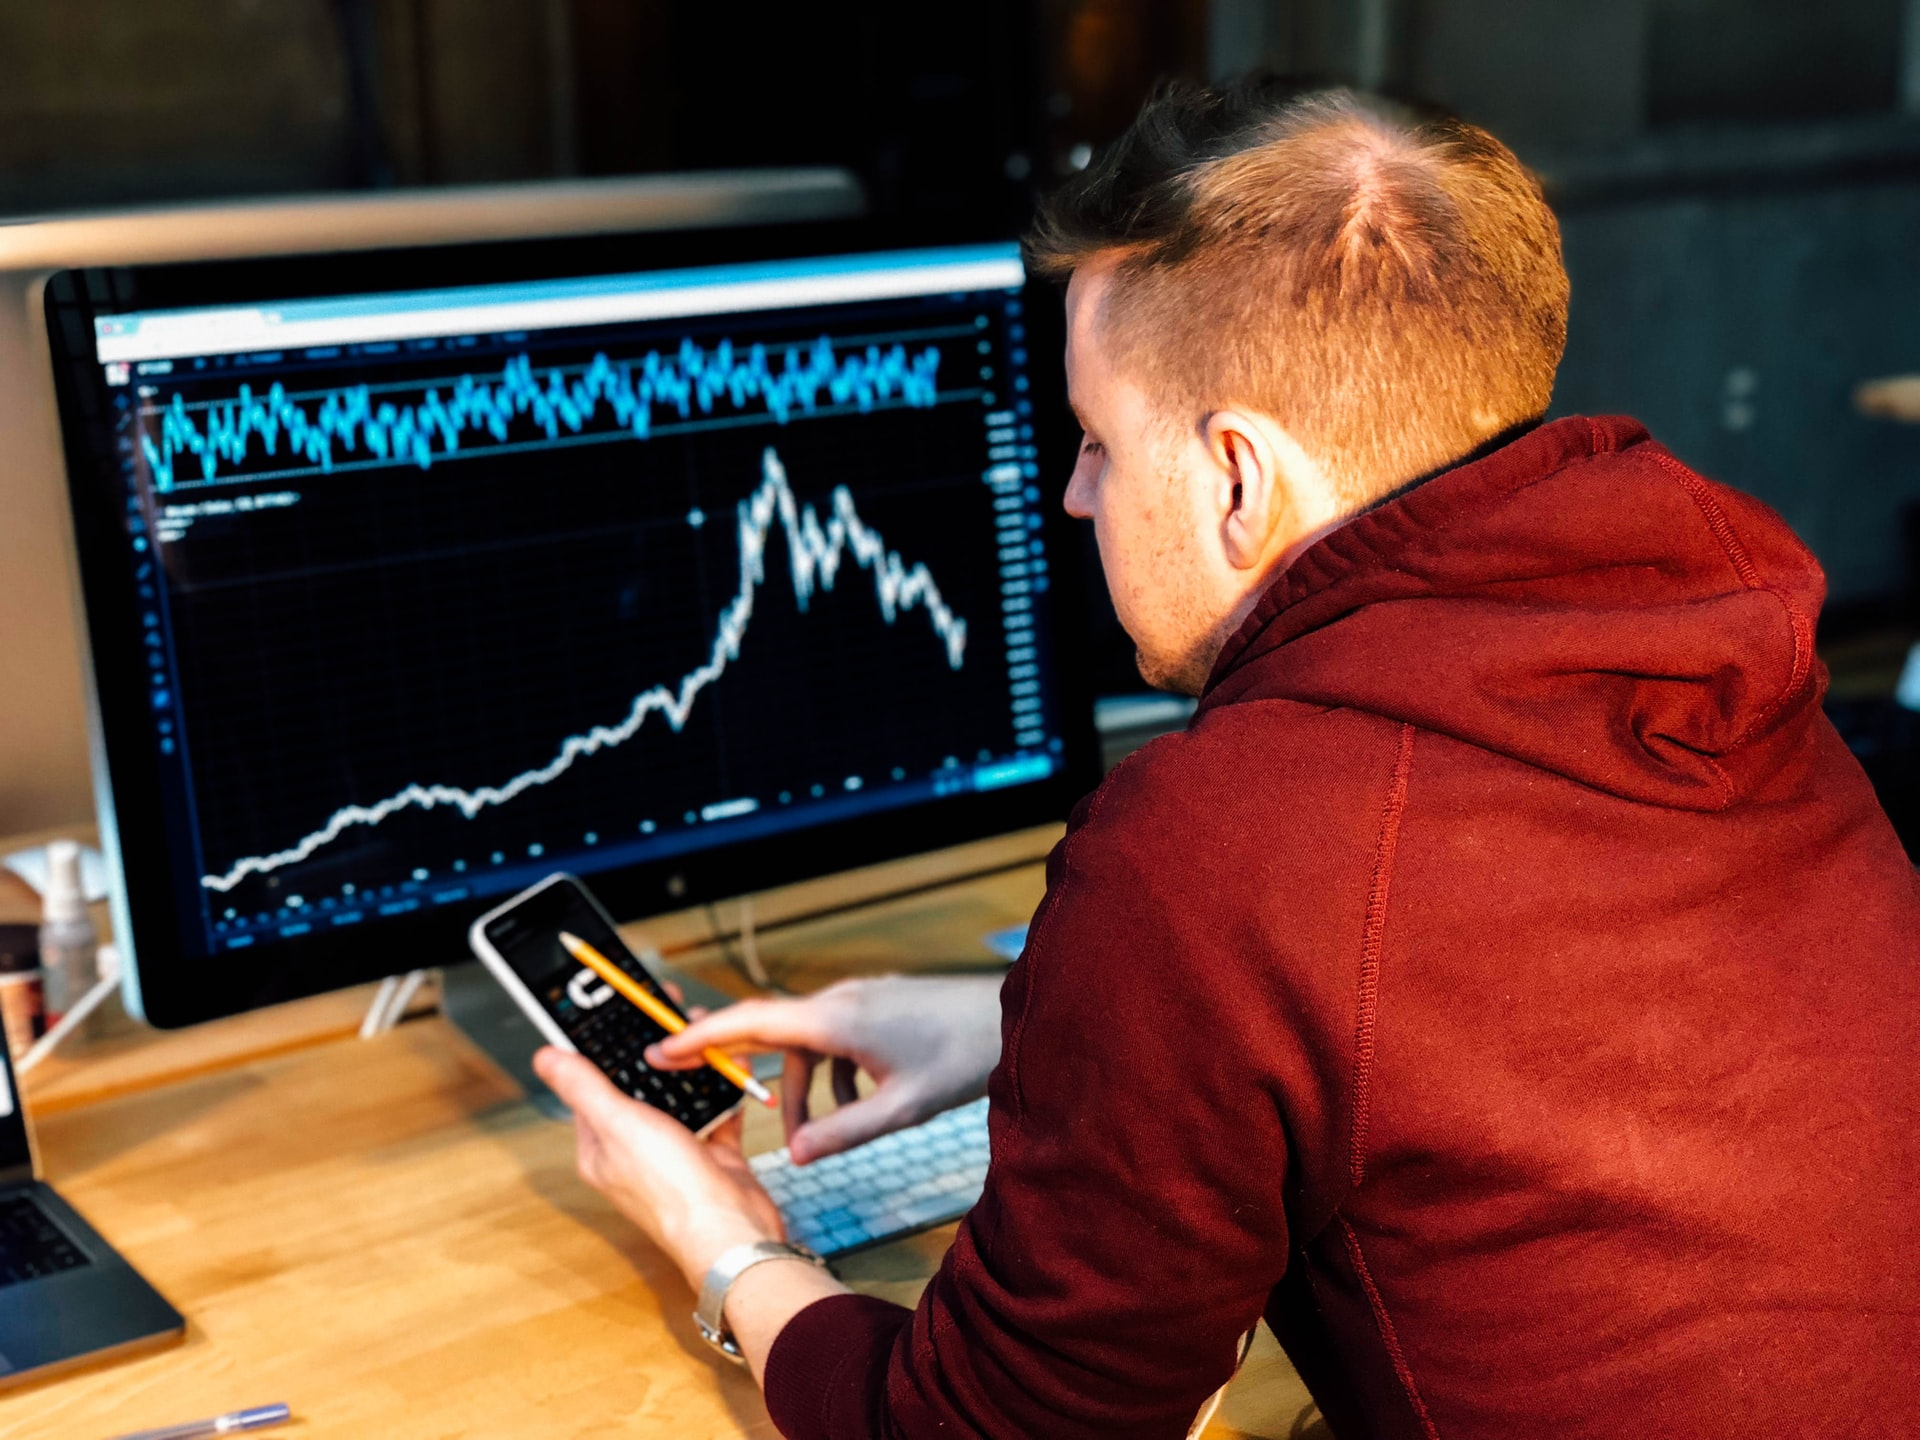 How to Make Your Money Trading Stock